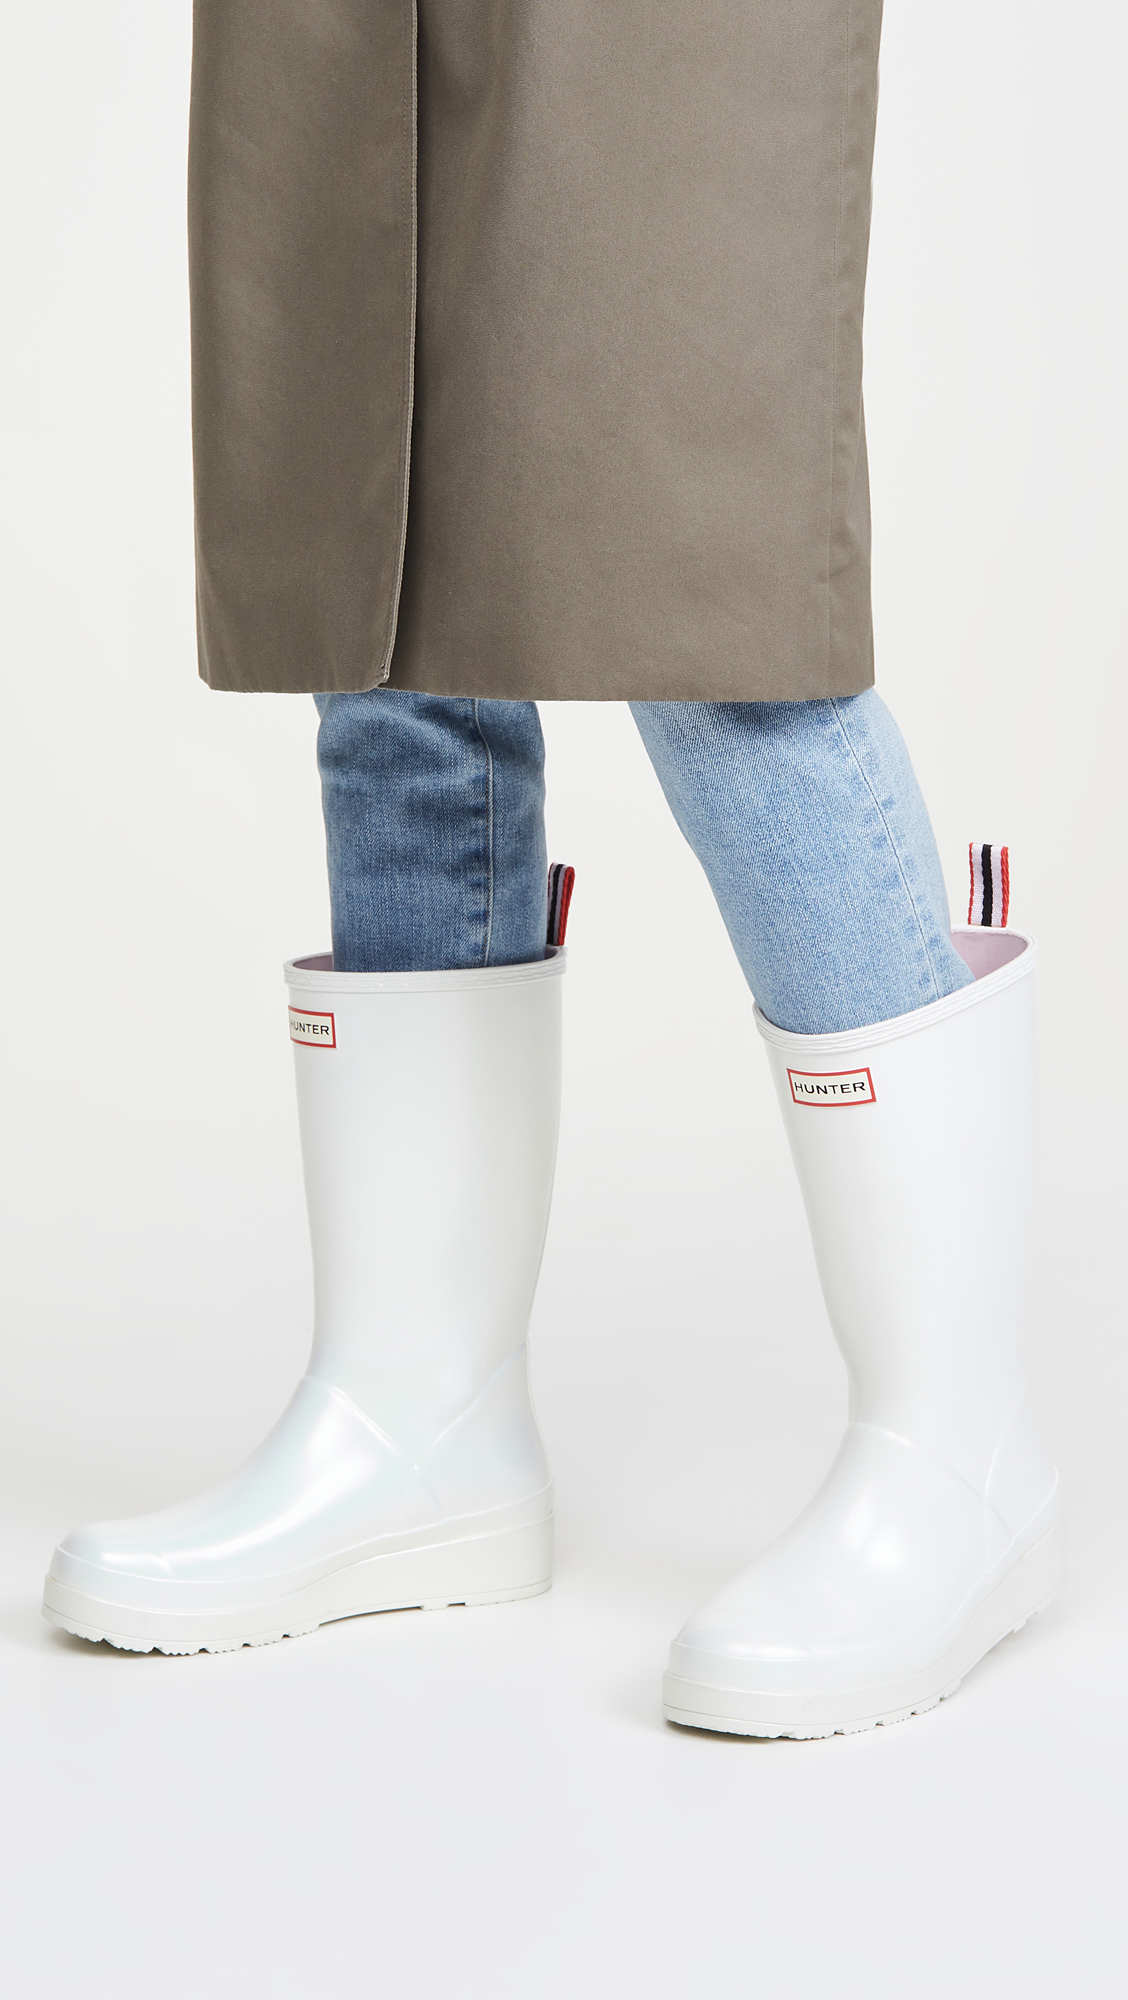 Hunter Boots Nebula Play Tall Boots